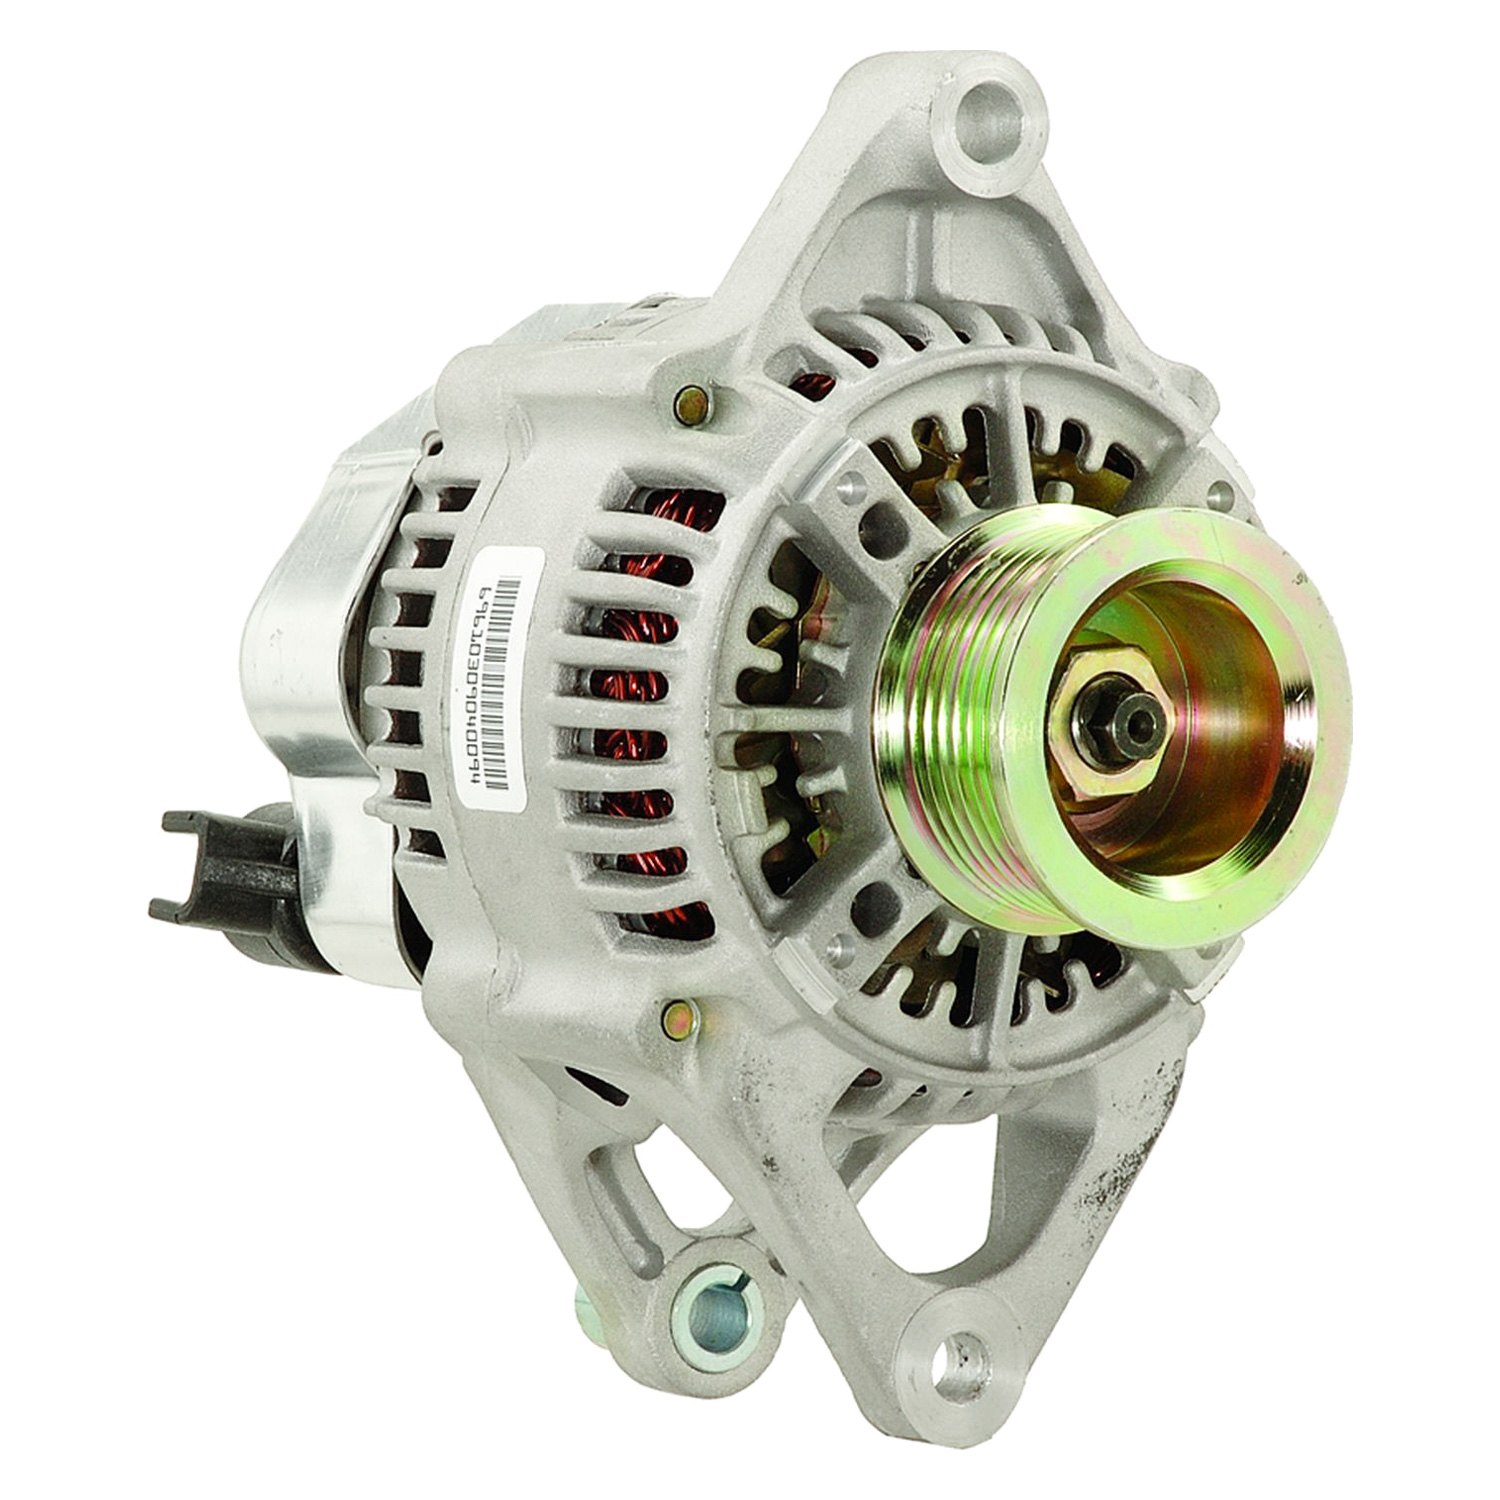 Dodge Dakota 2000 Remanufactured Complete: Dodge Dakota 2000 Professional™ Alternator